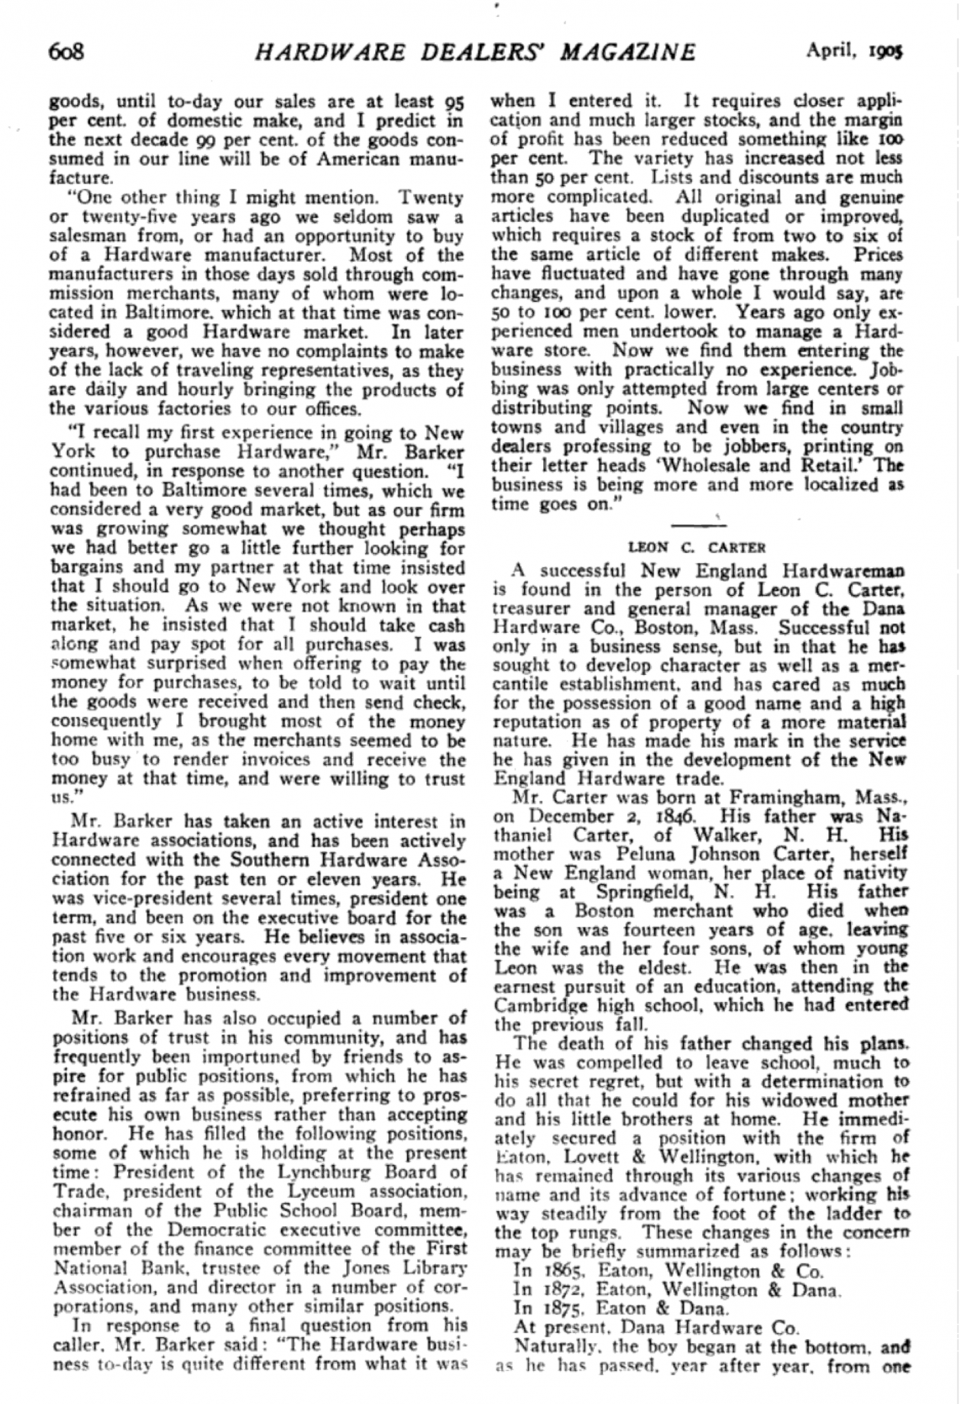 Page two of an article about O. B. Barker, of the Barker-Jennings Corporation in Lynchburg, VA. This was published in the Hardware Dealers Magazine in April 1905.